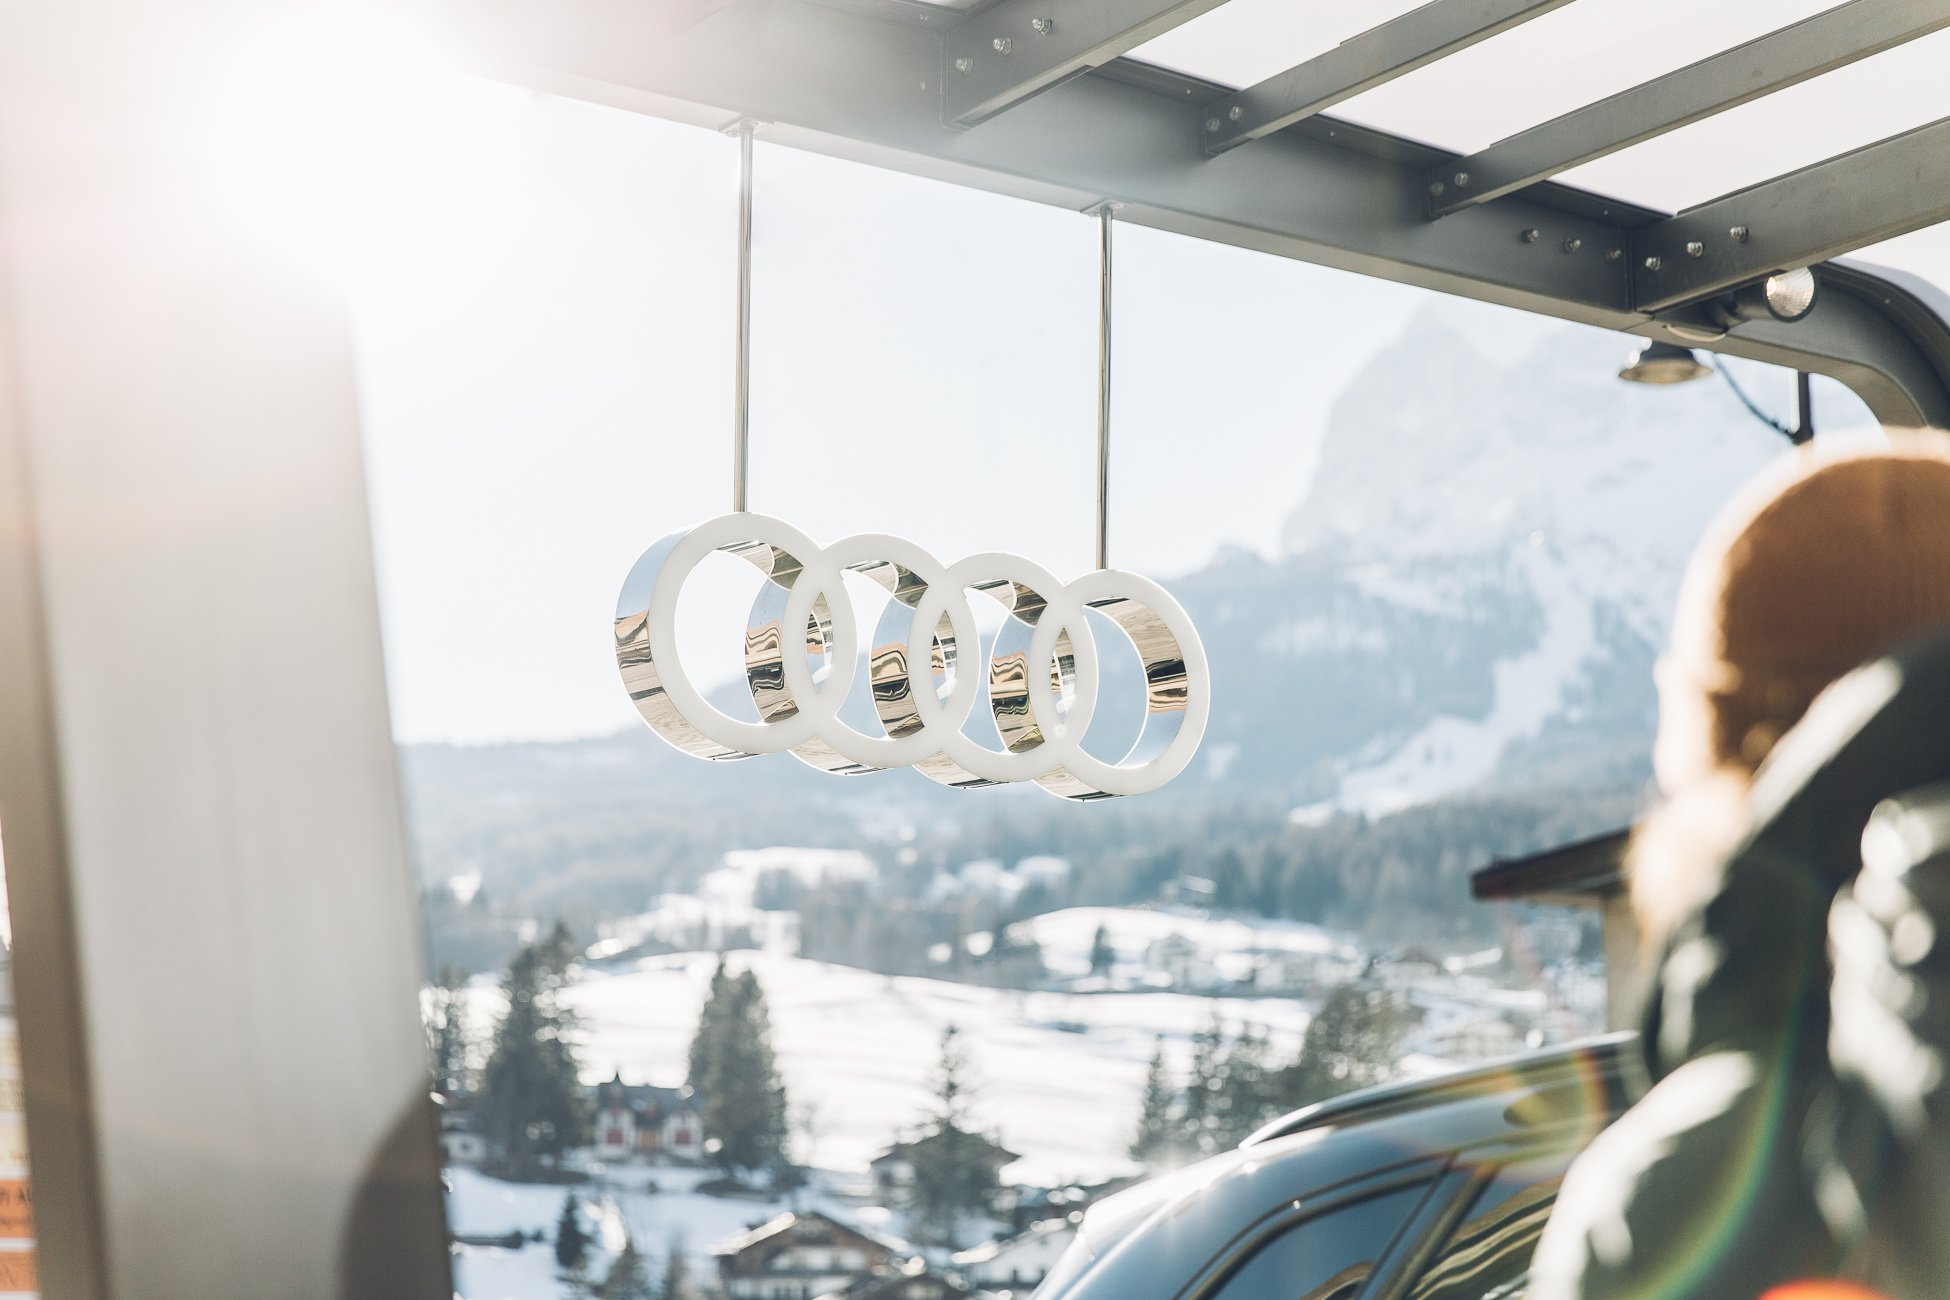 Audi Best of the Alps